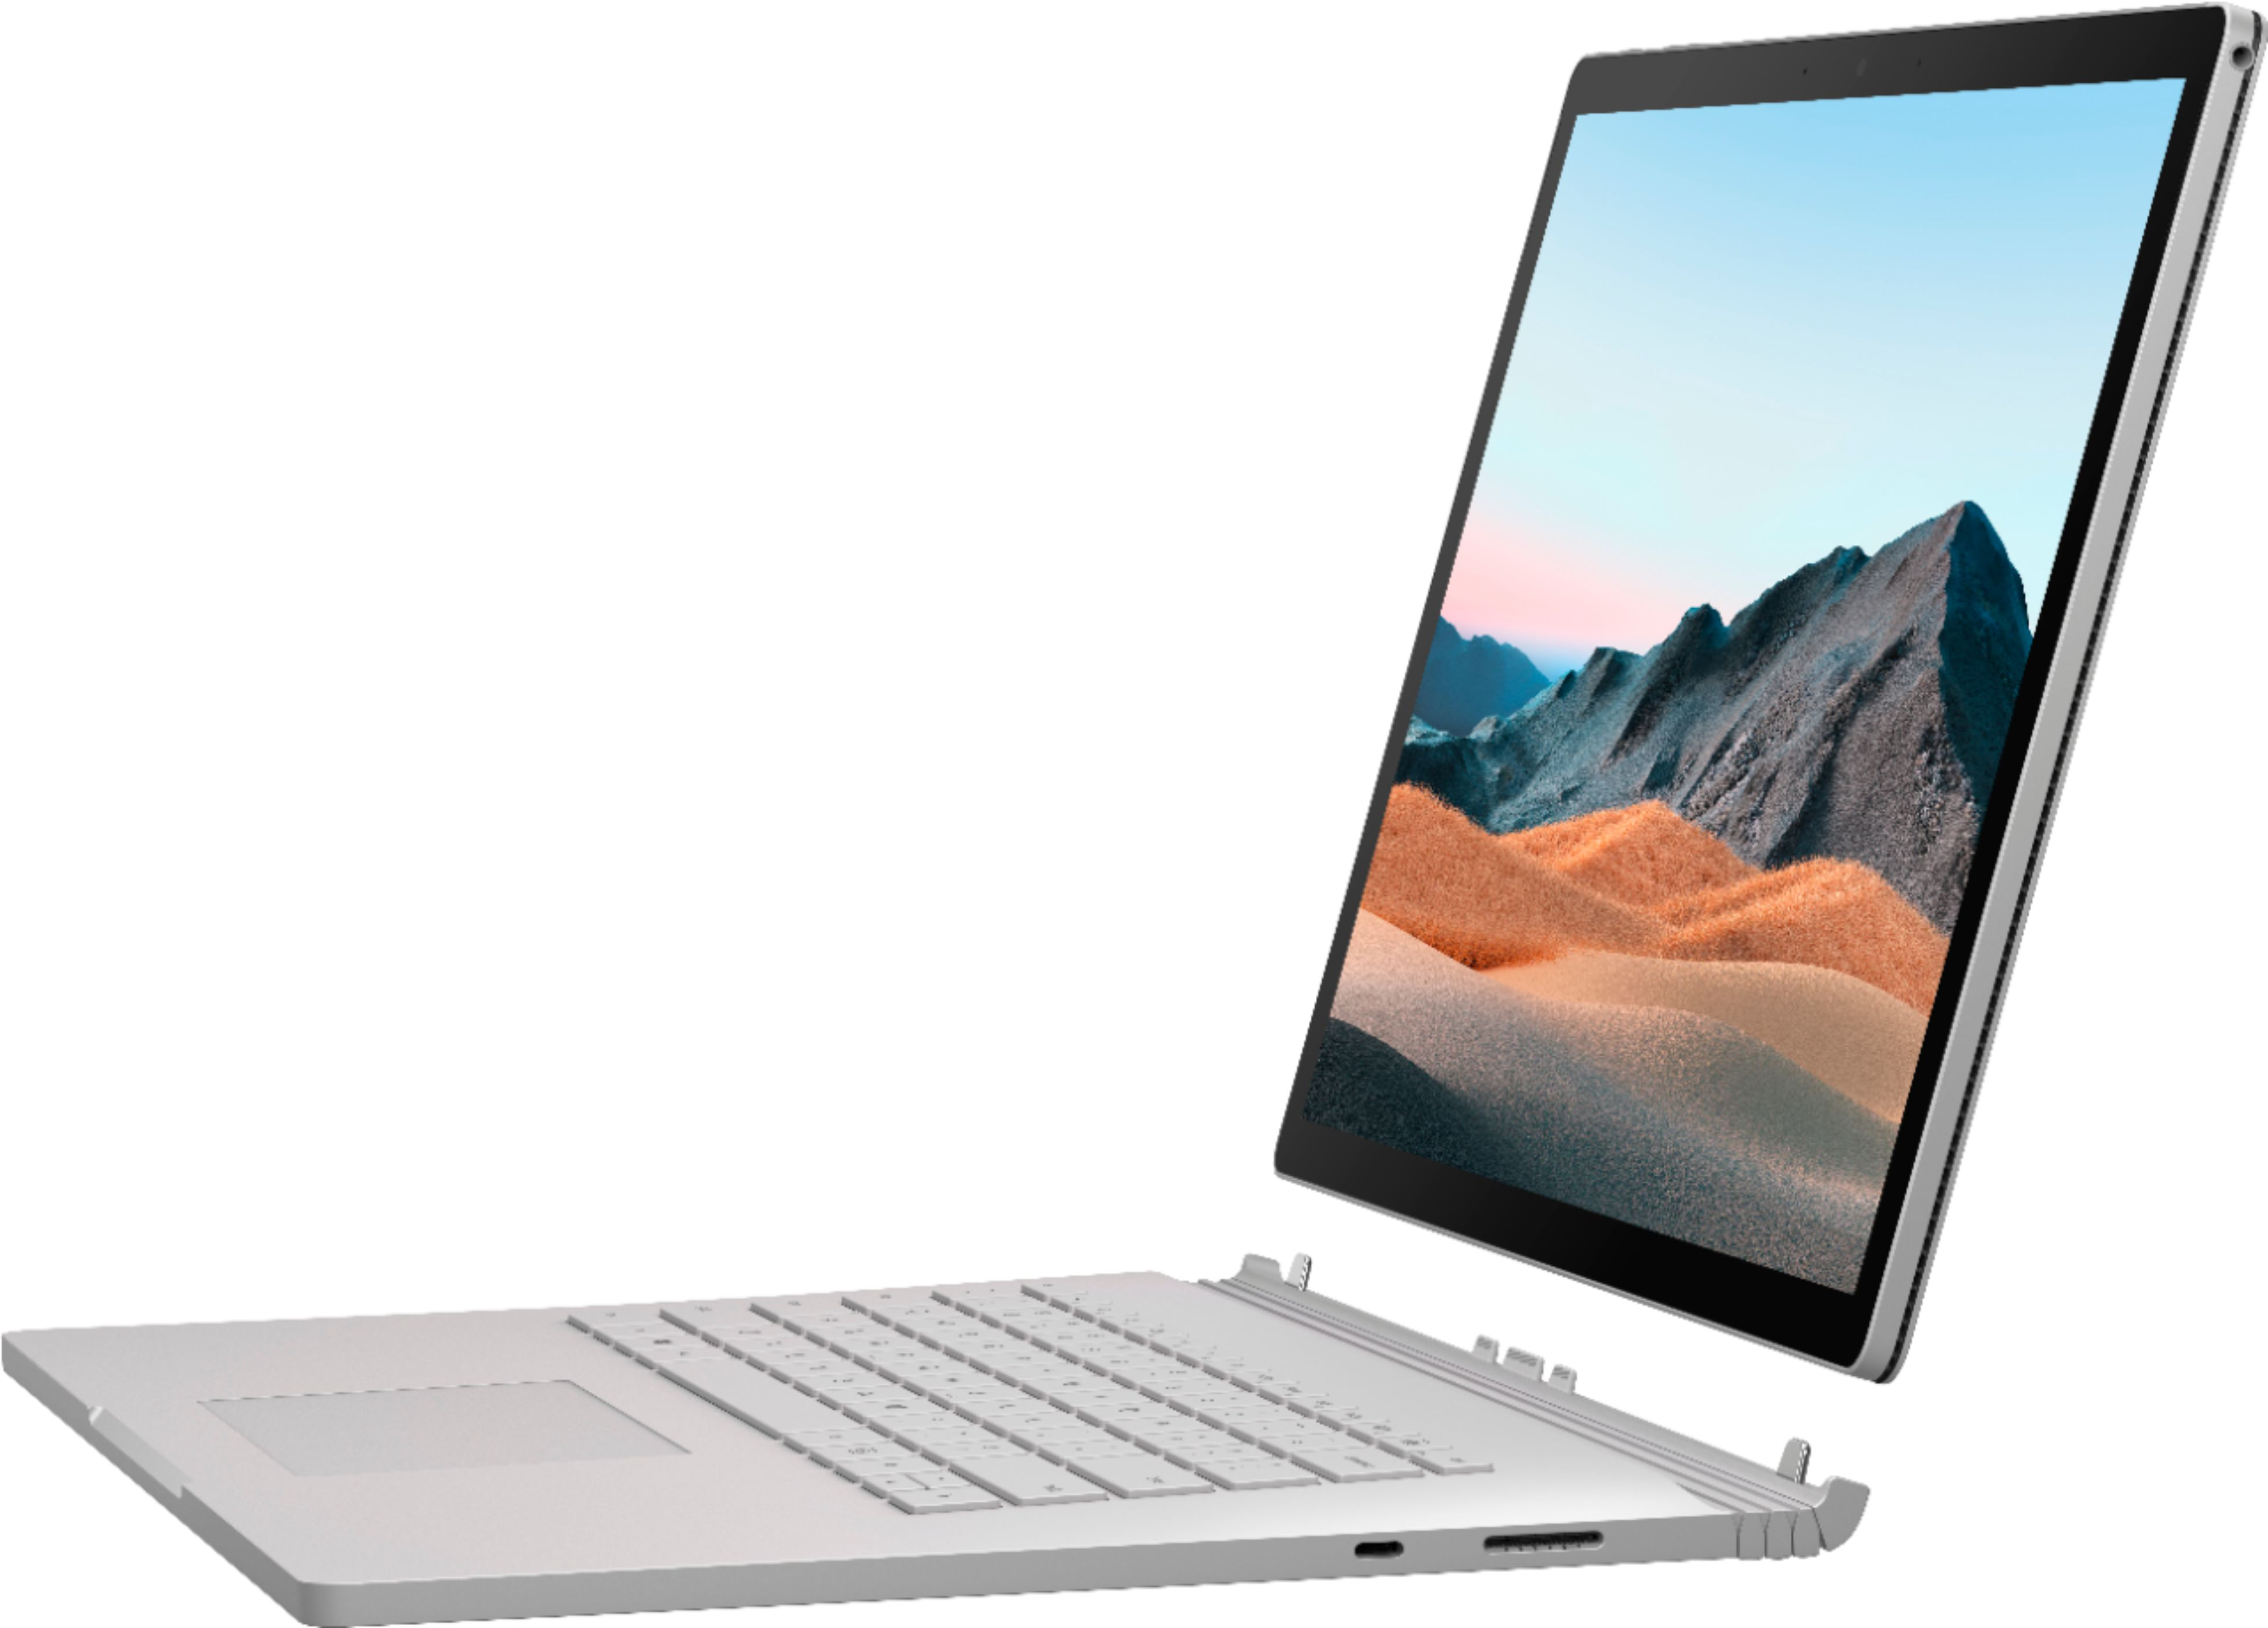 """Front Zoom. Microsoft - Surface Book 3 15"""" Touch-Screen PixelSense™ - 2-in-1 Laptop - Intel Core i7 - 32GB Memory - 2TB SSD - Platinum."""